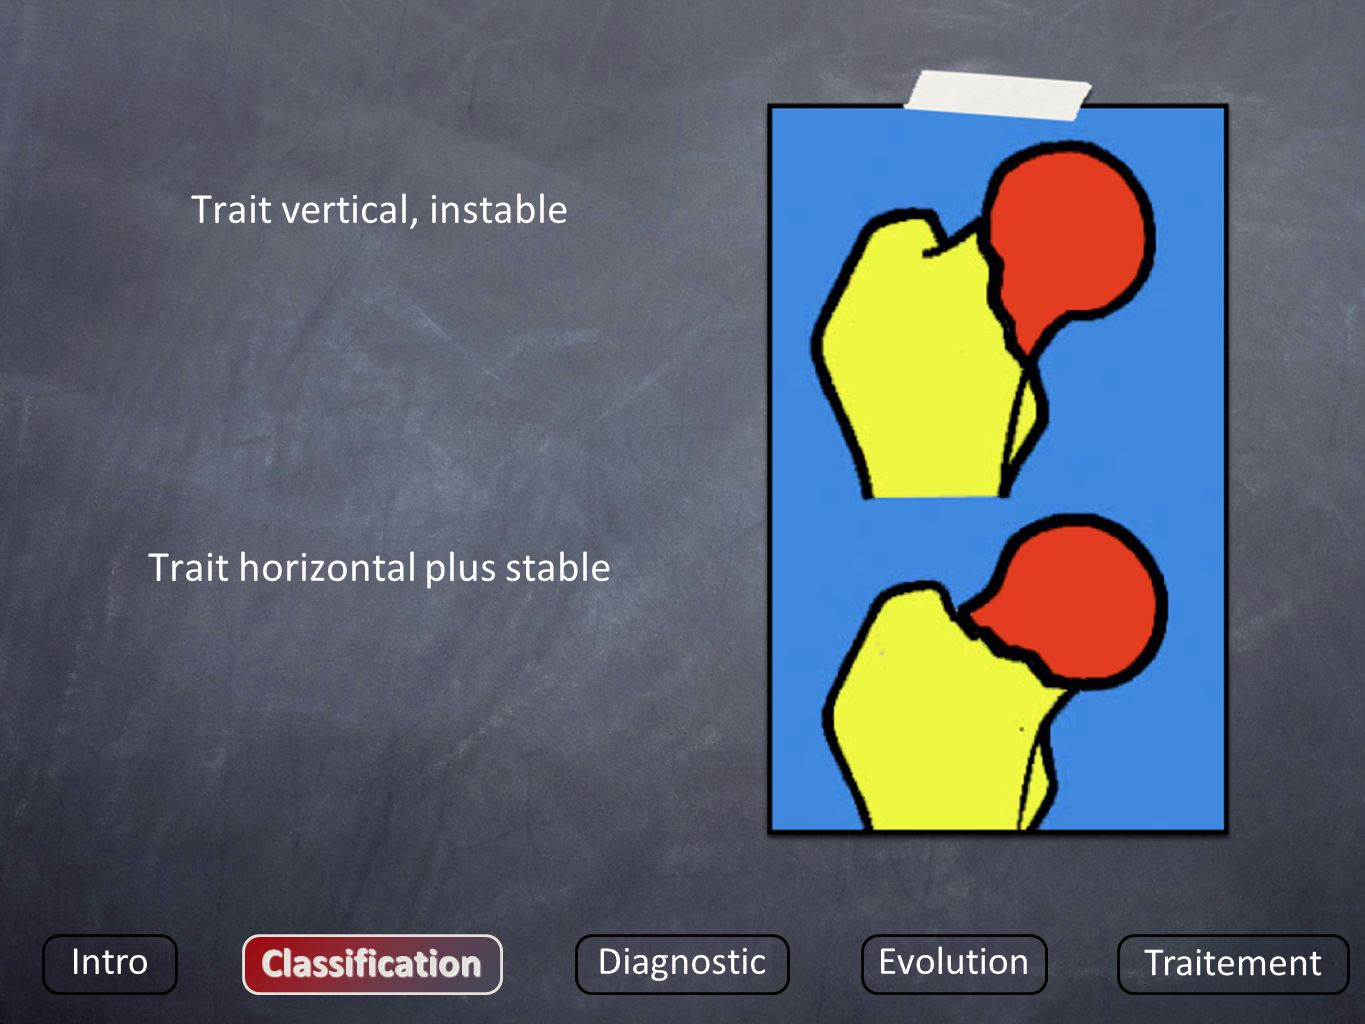 Trait vertical, instable